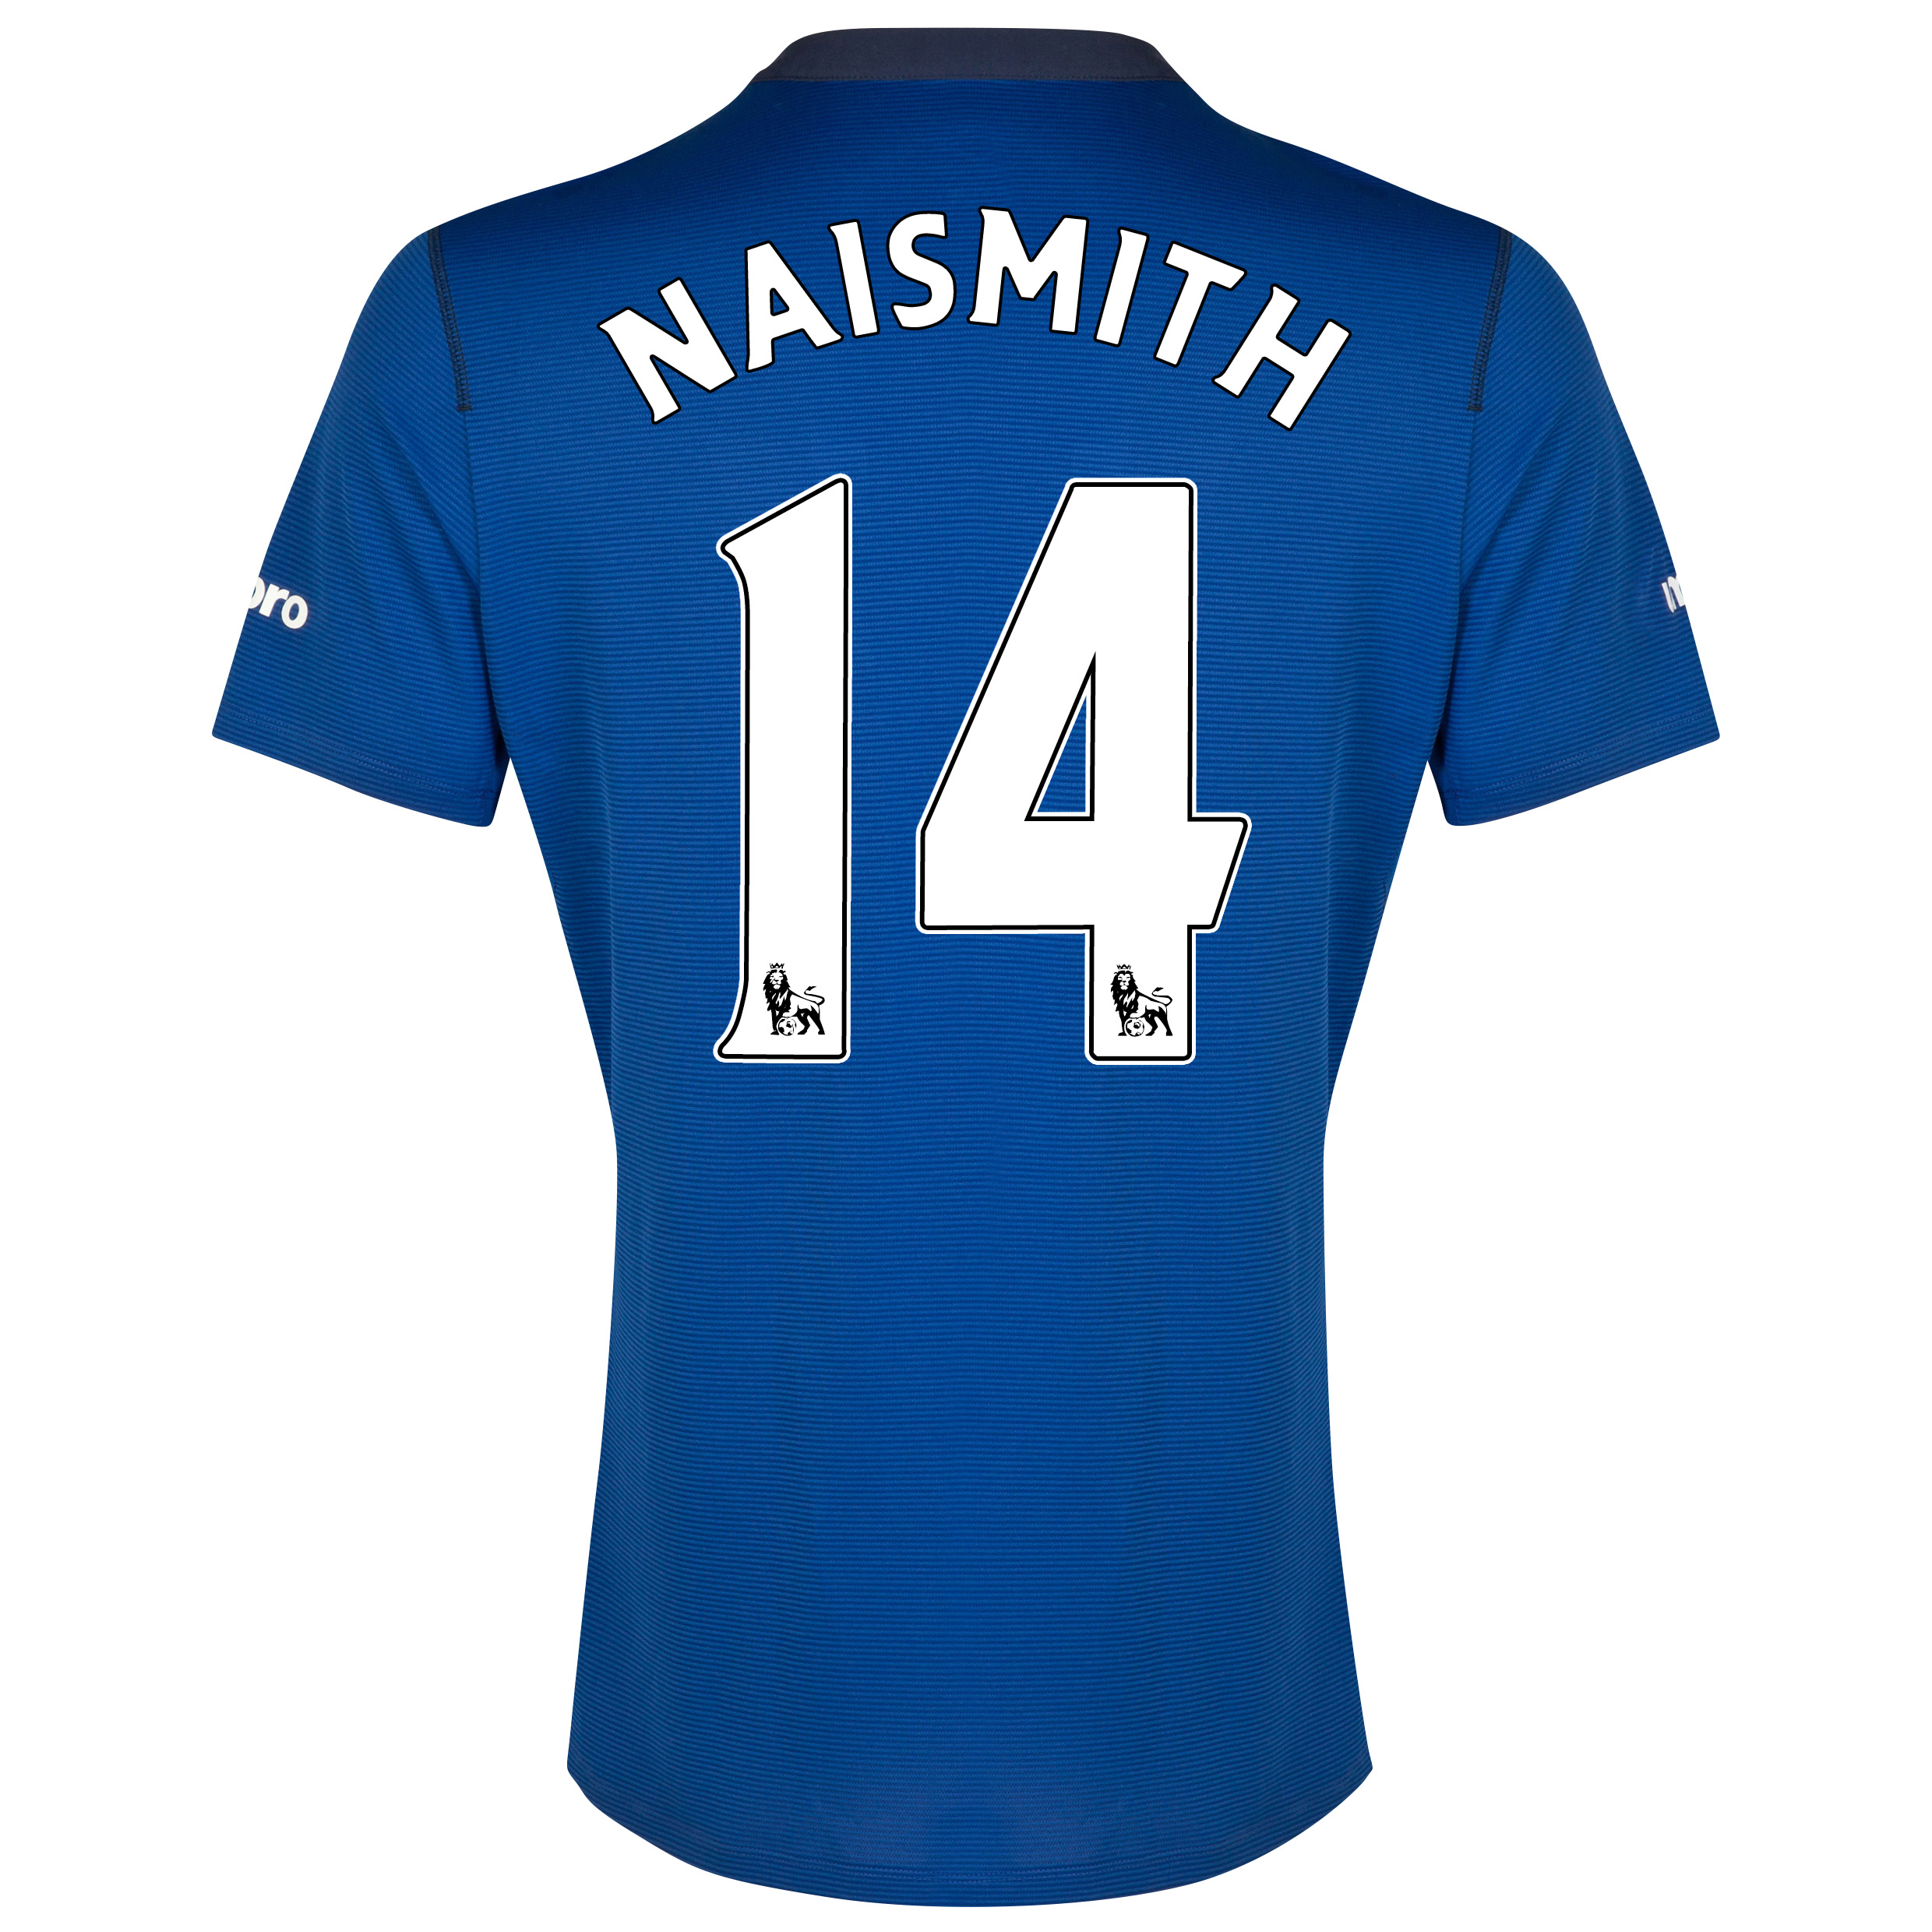 Everton SS Home Shirt 2014/15 with Naismith 14 printing